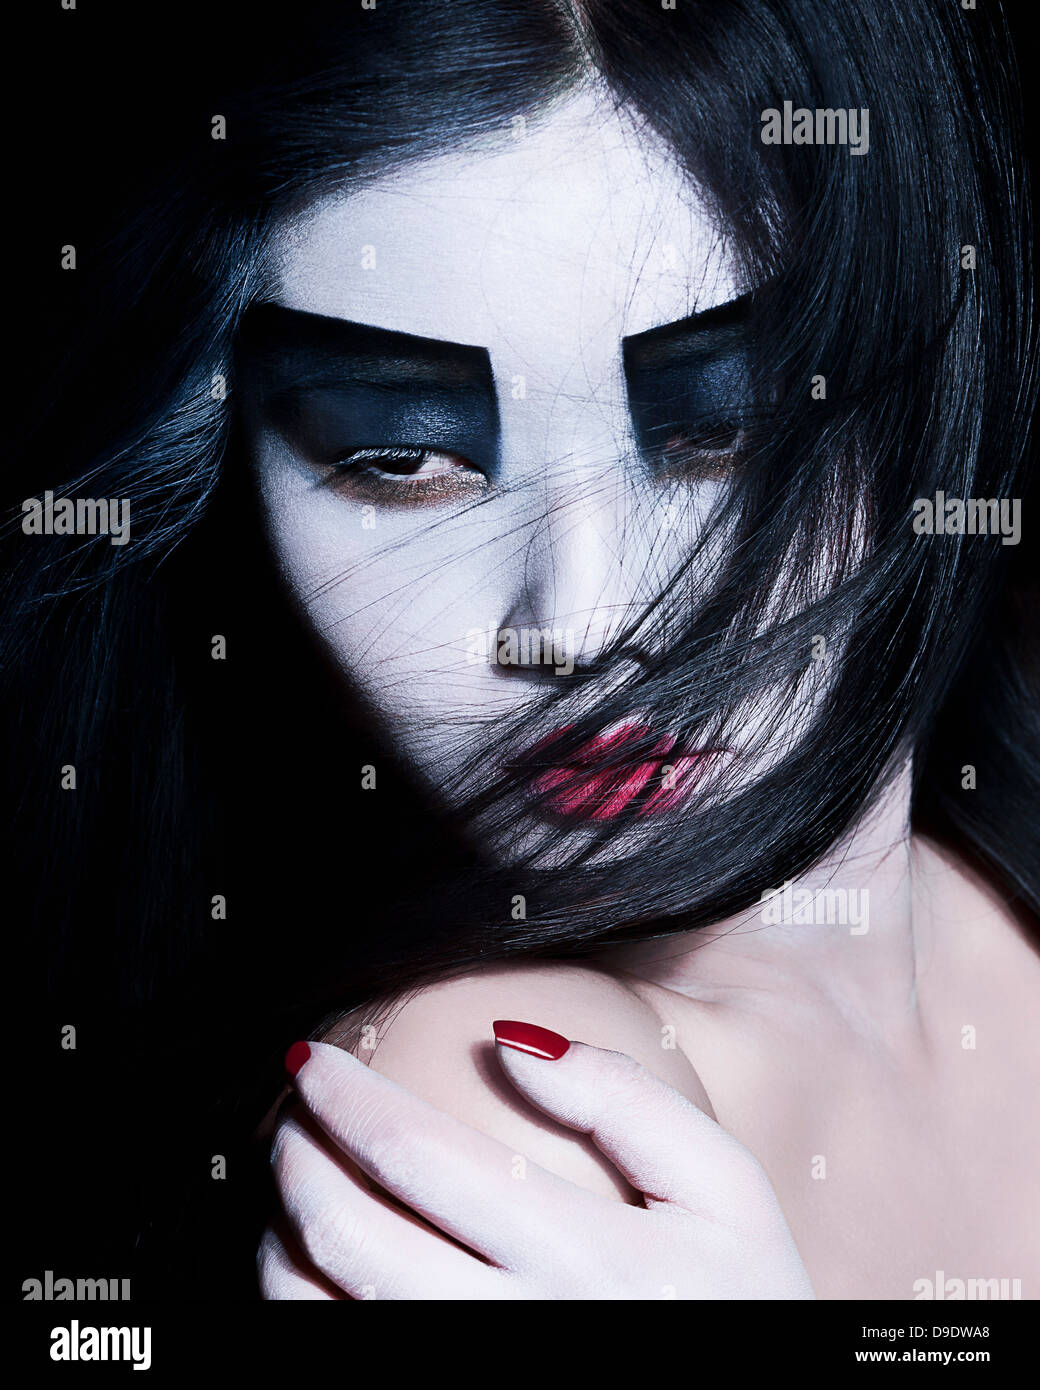 Young woman with dramatic makeup, black eyeshadow - Stock Image